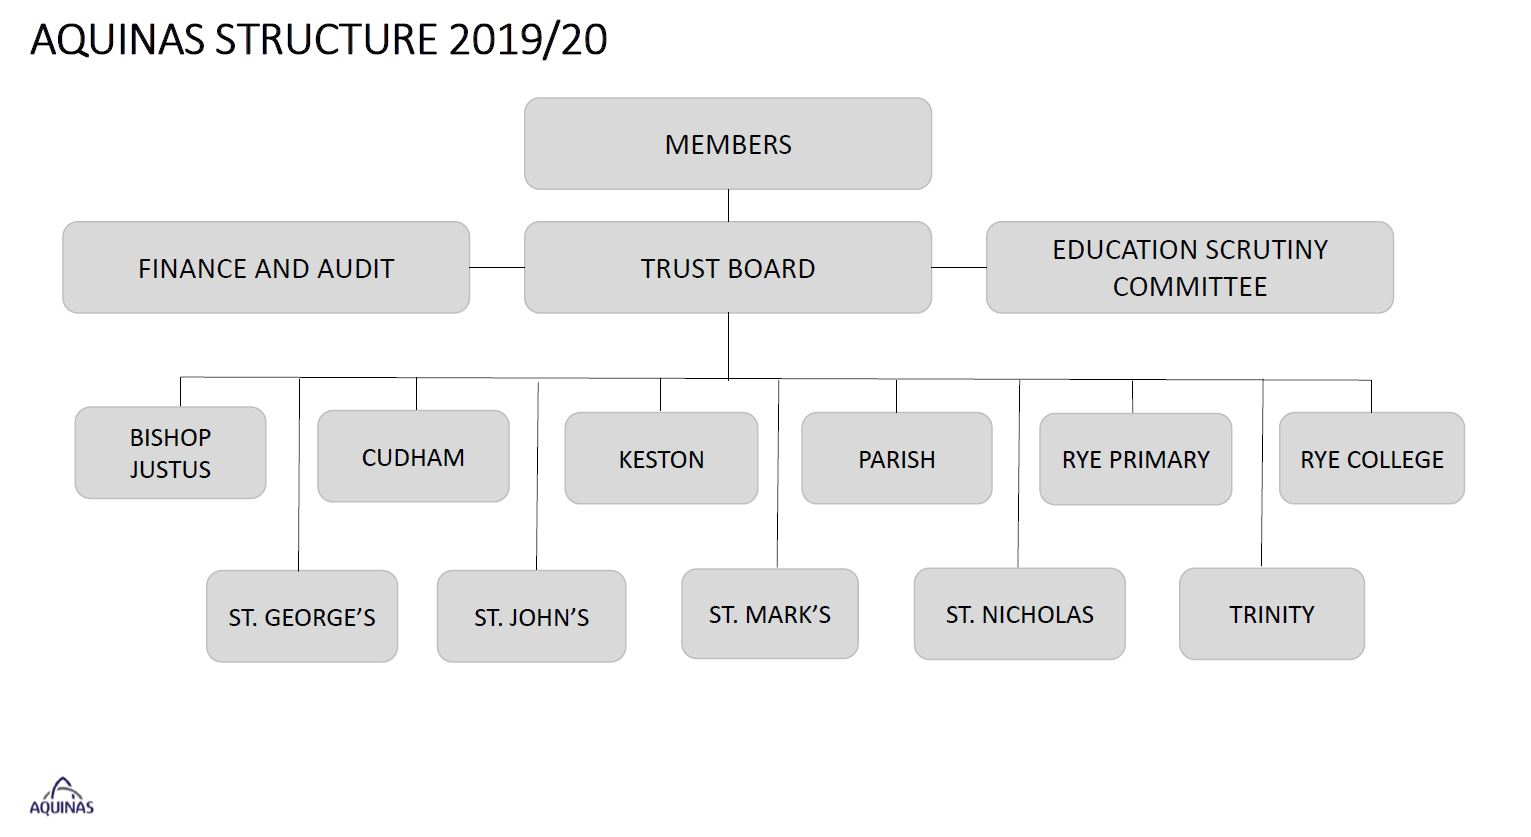 CurrentTrustStructure19-20.jpg